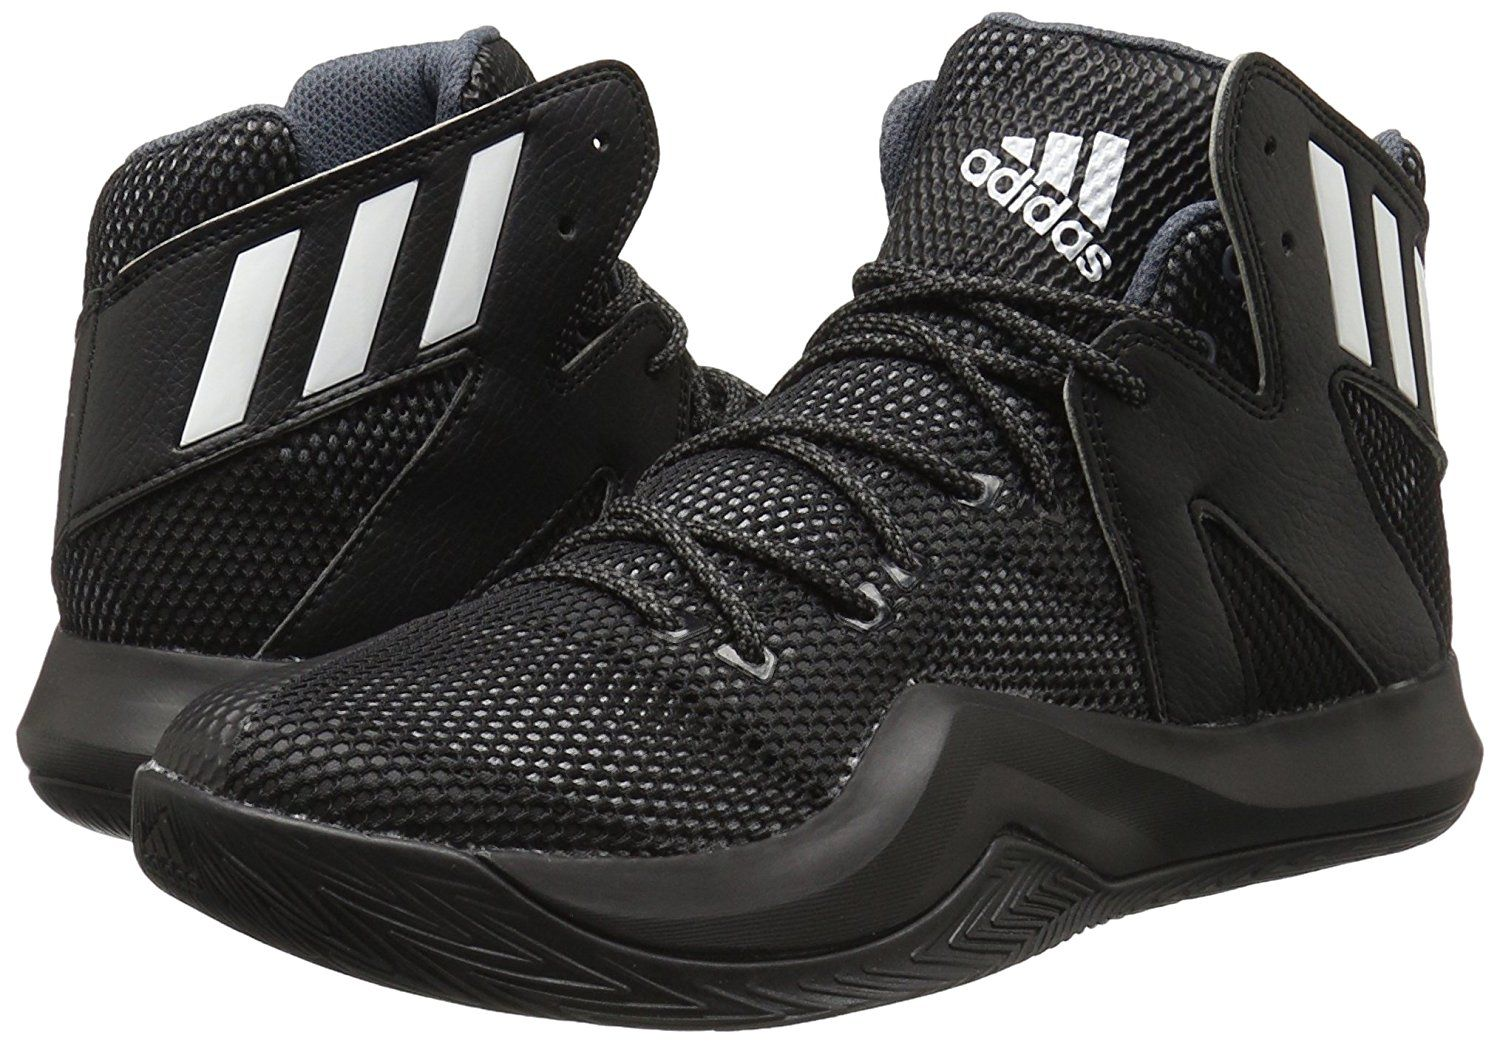 Amazon Com Adidas Performance Men 39 S Crazy Bounce Basketball Shoe Basketball Black Basketball Shoes Basketball Shoes For Men Red Basketball Shoes